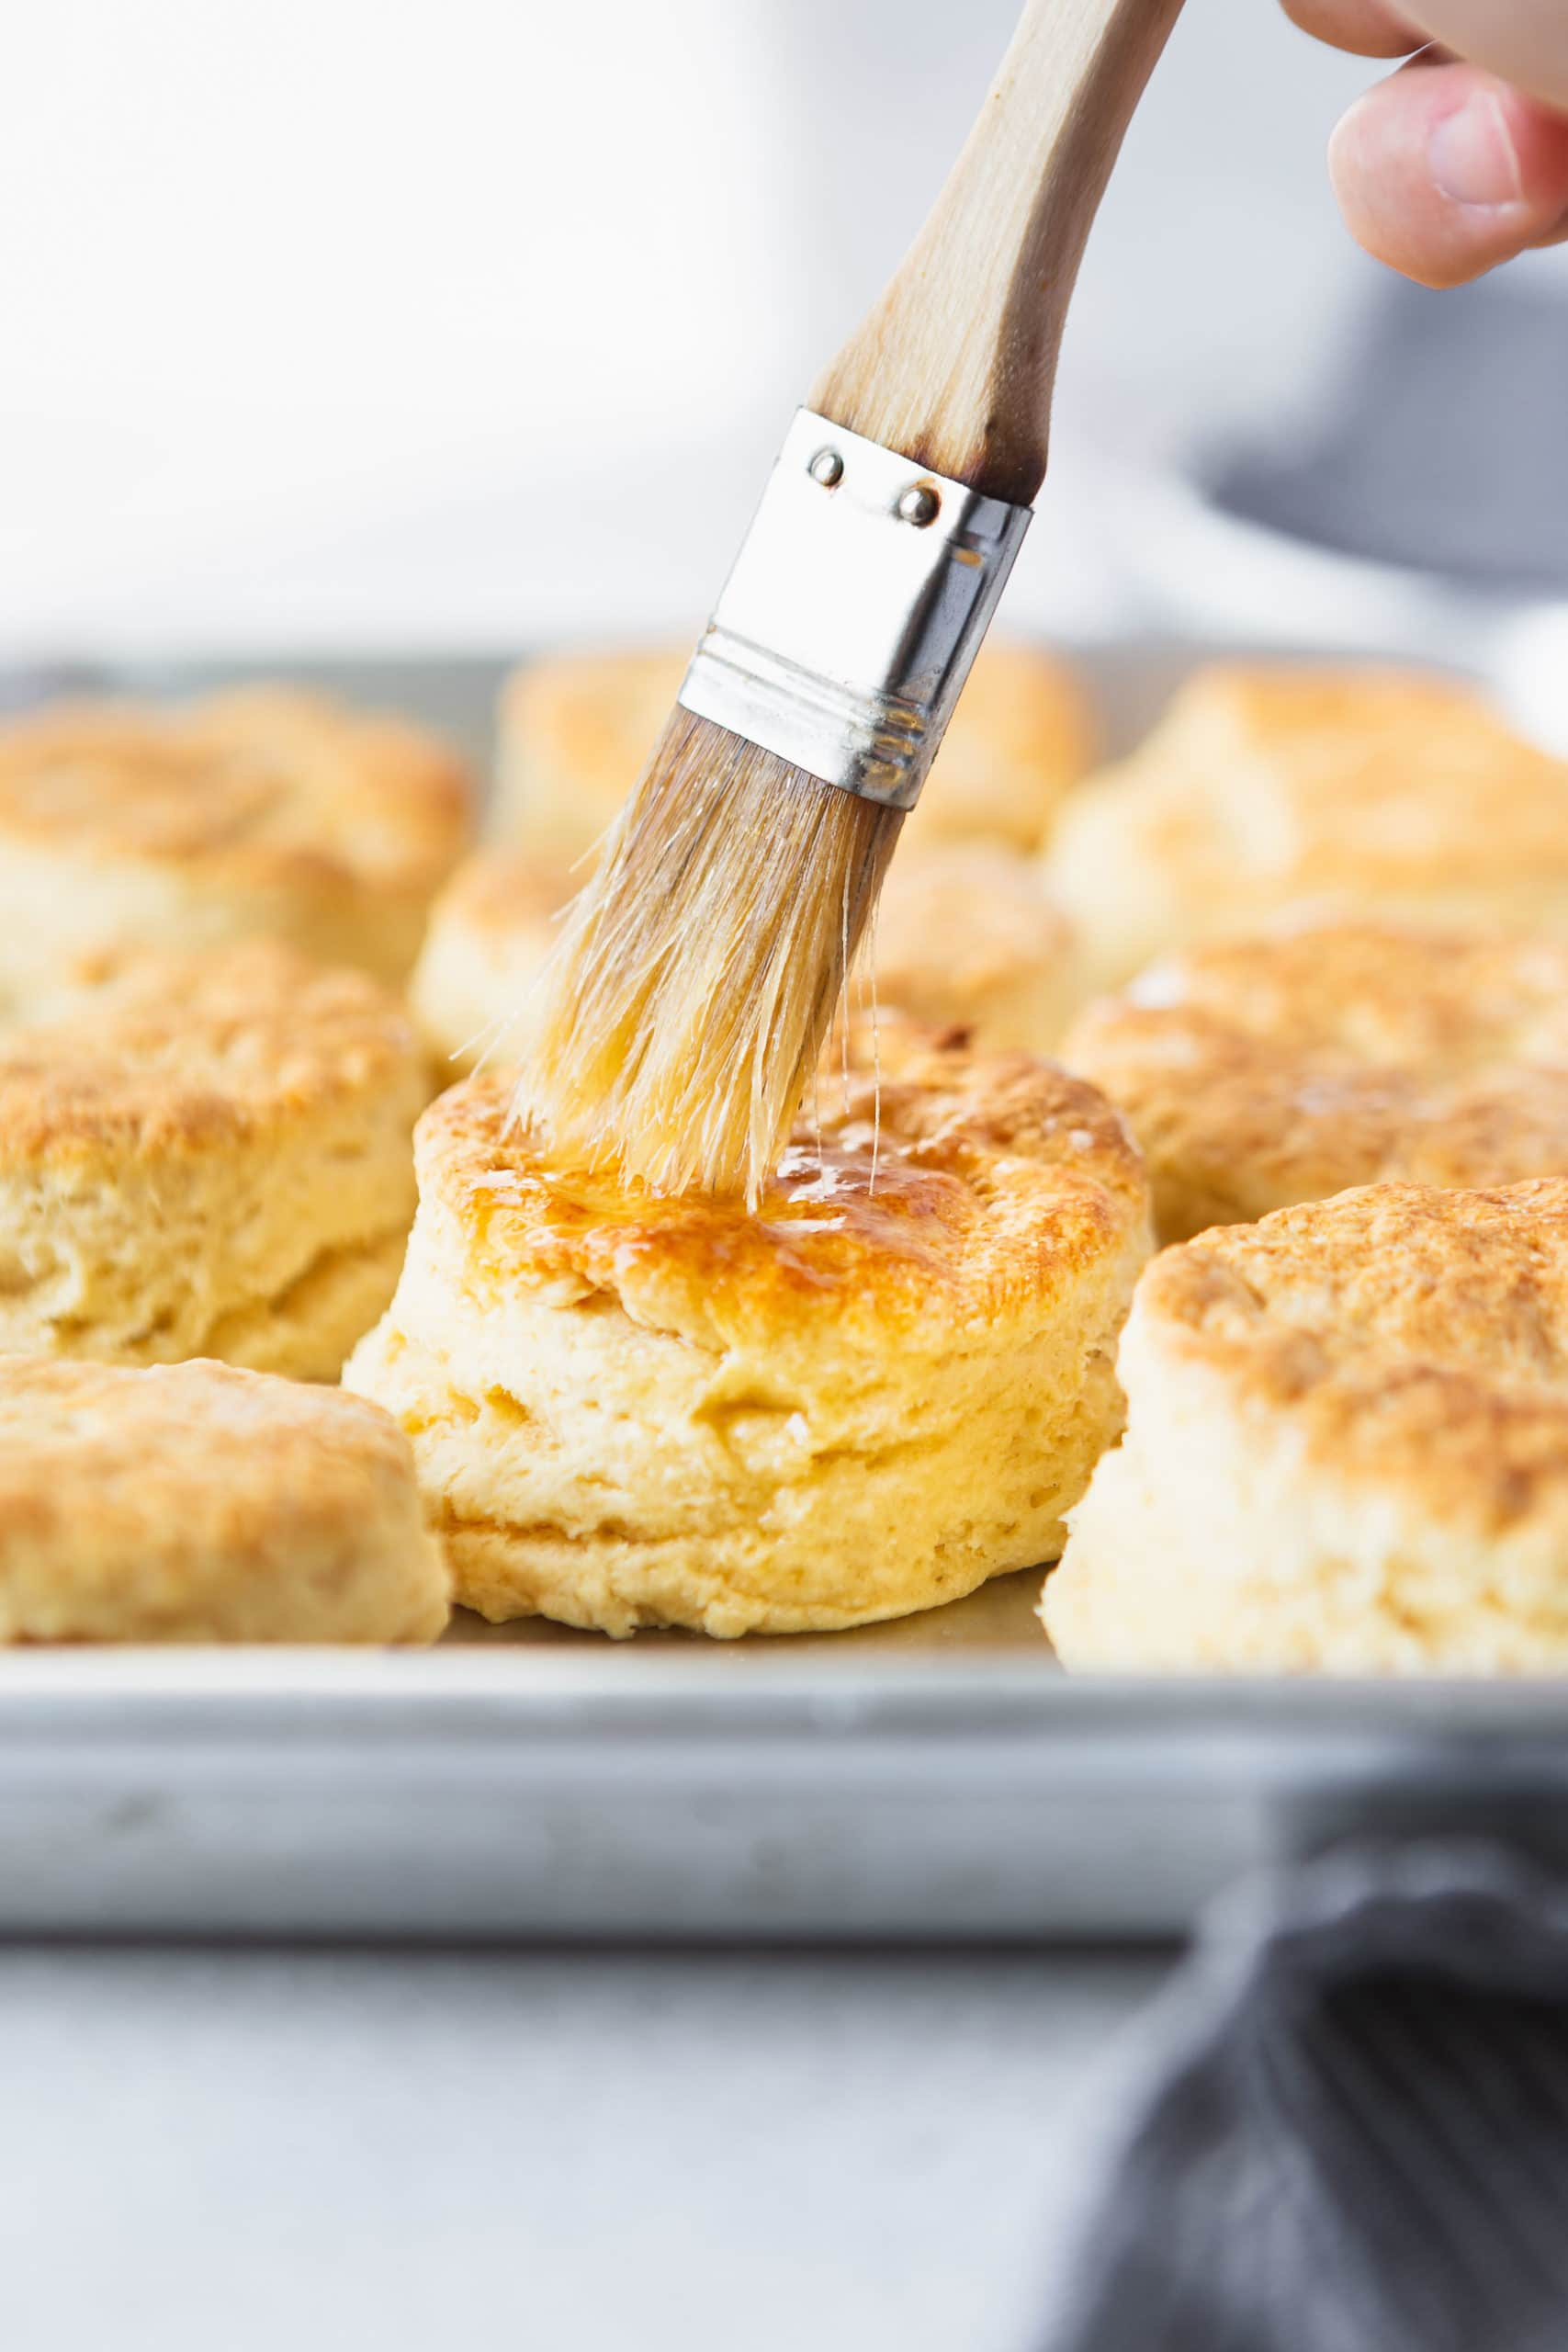 A pan full of golden brown buttermilk biscuits. Butter is being brushed on the top of a biscuit with a pastry brush.